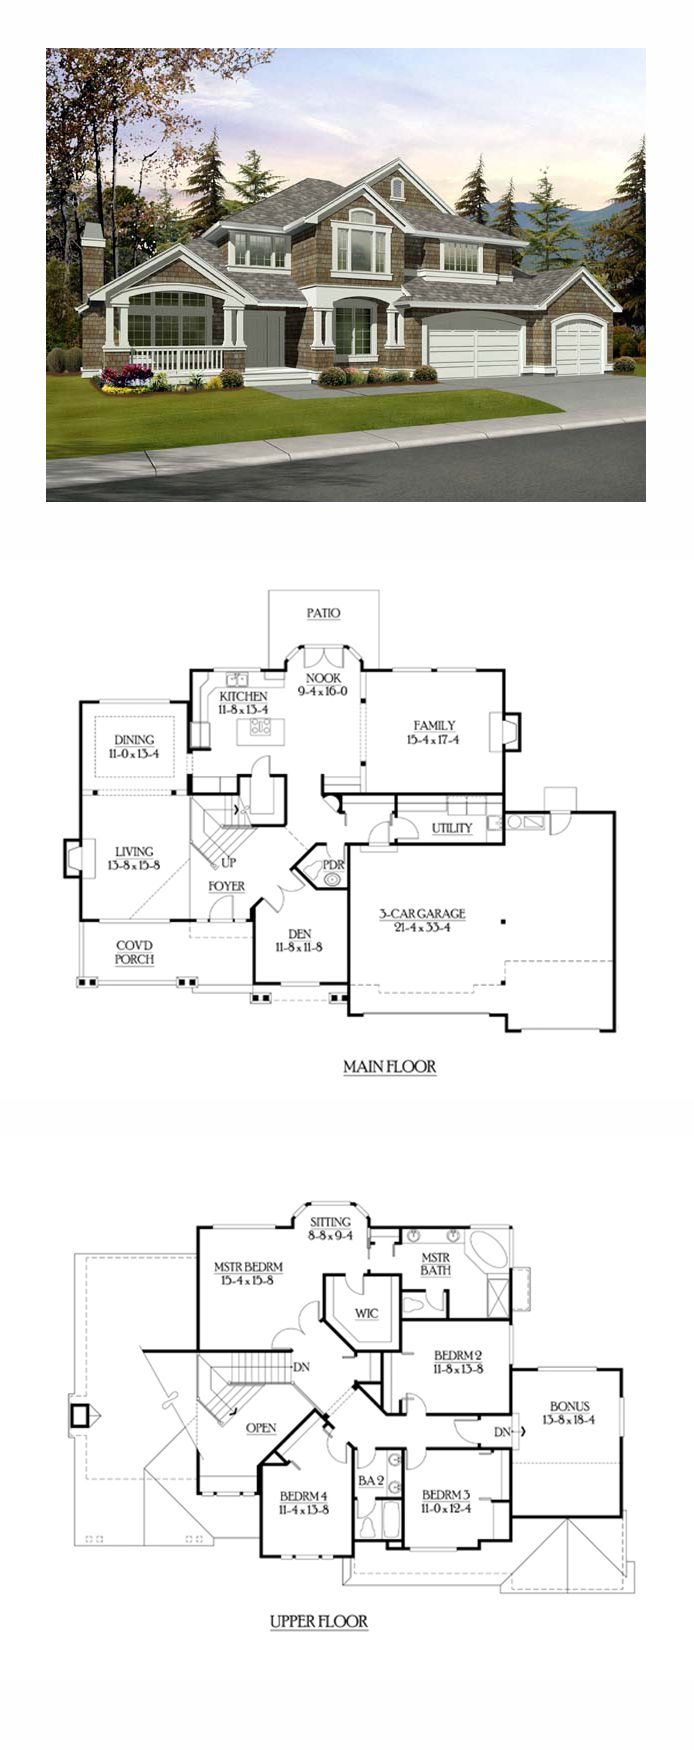 5 bedroom loft floor plans  Shingle House Plan chp  My future home  Pinterest  House